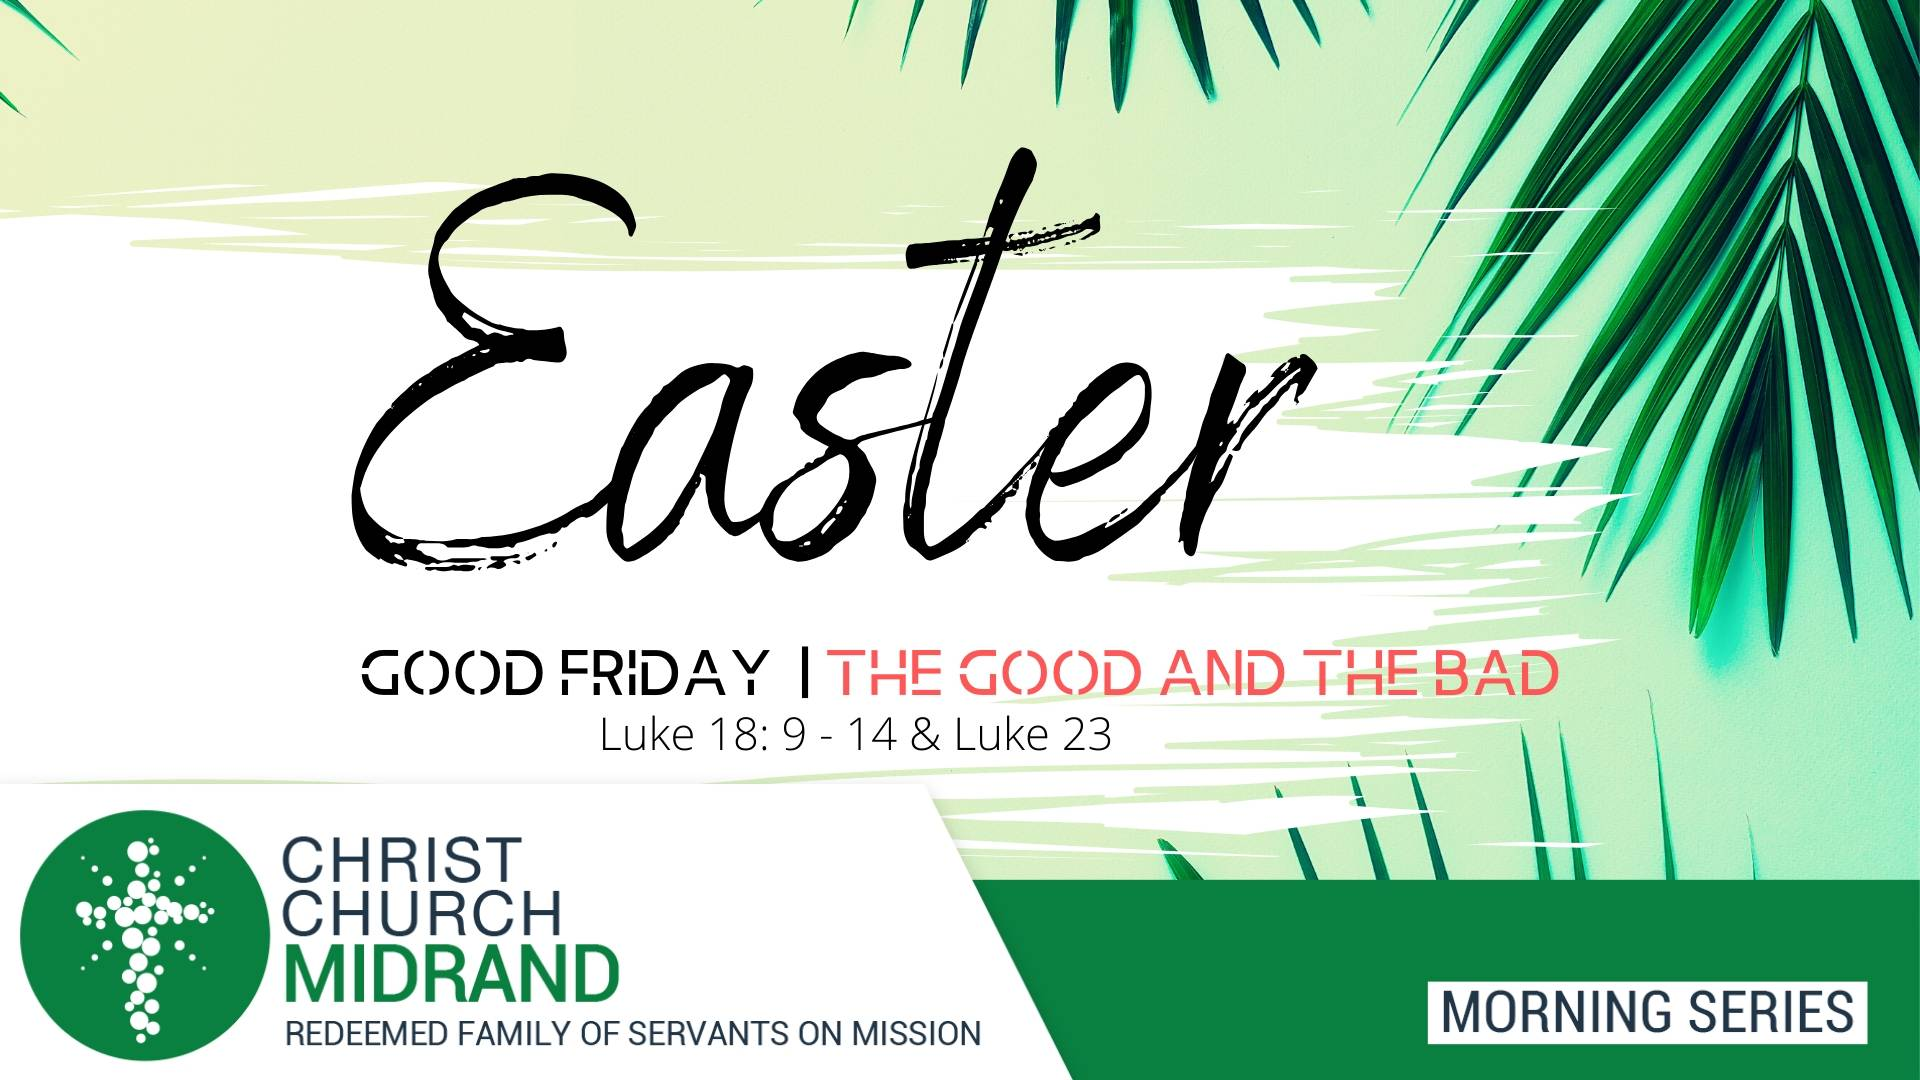 Good Friday Main Image